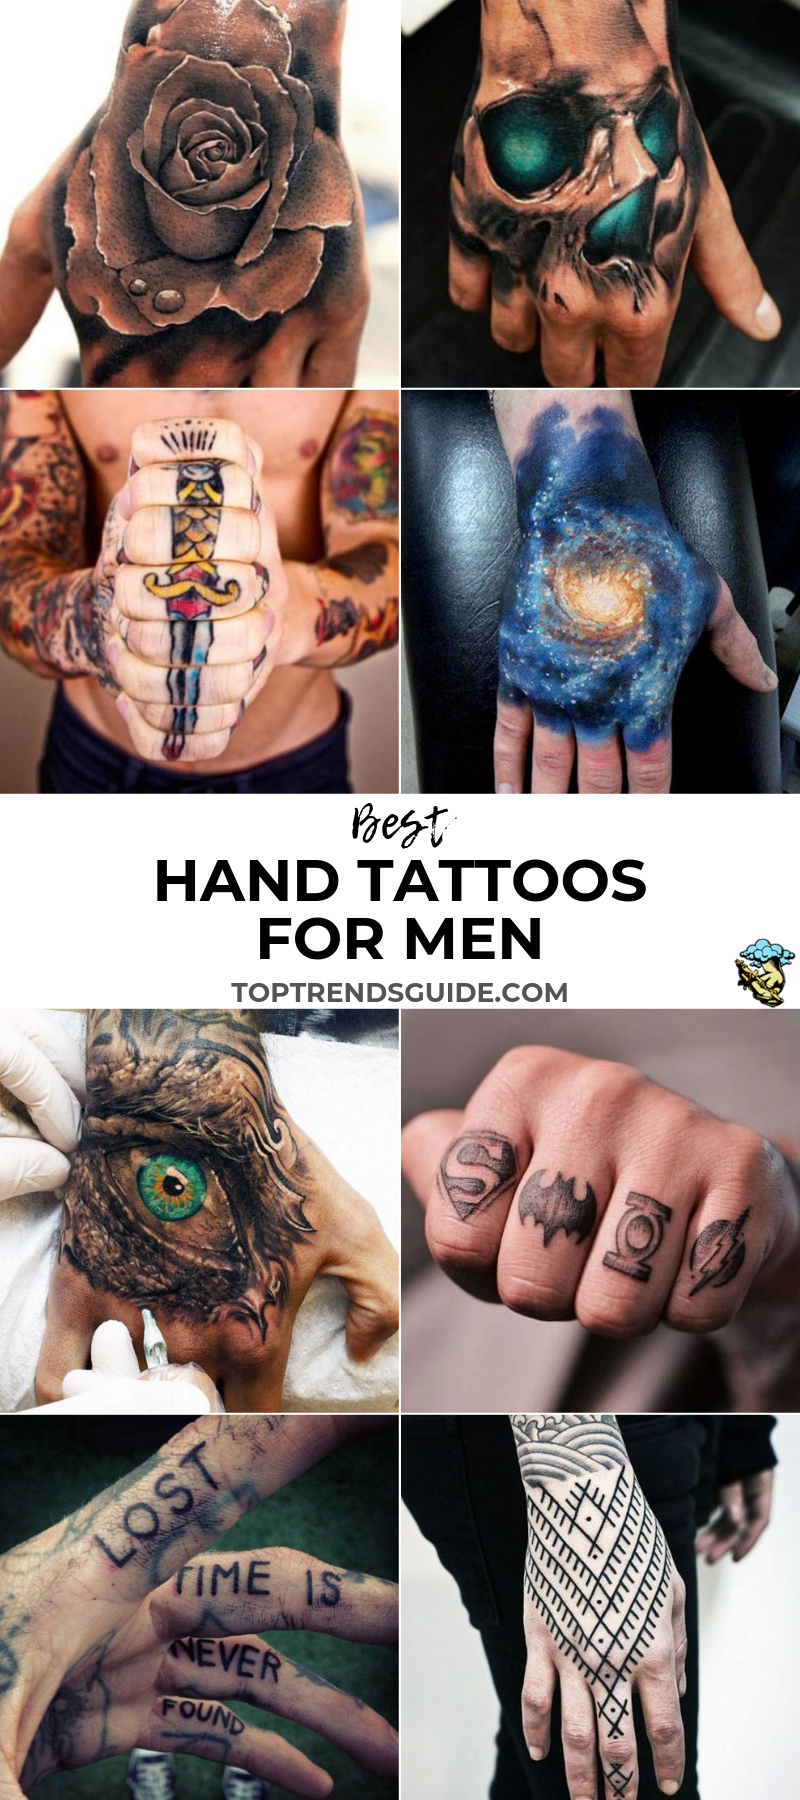 Best Hand Tattoos For Men Hand Tattoos For Guys Side Hand Tattoos Tattoos For Guys